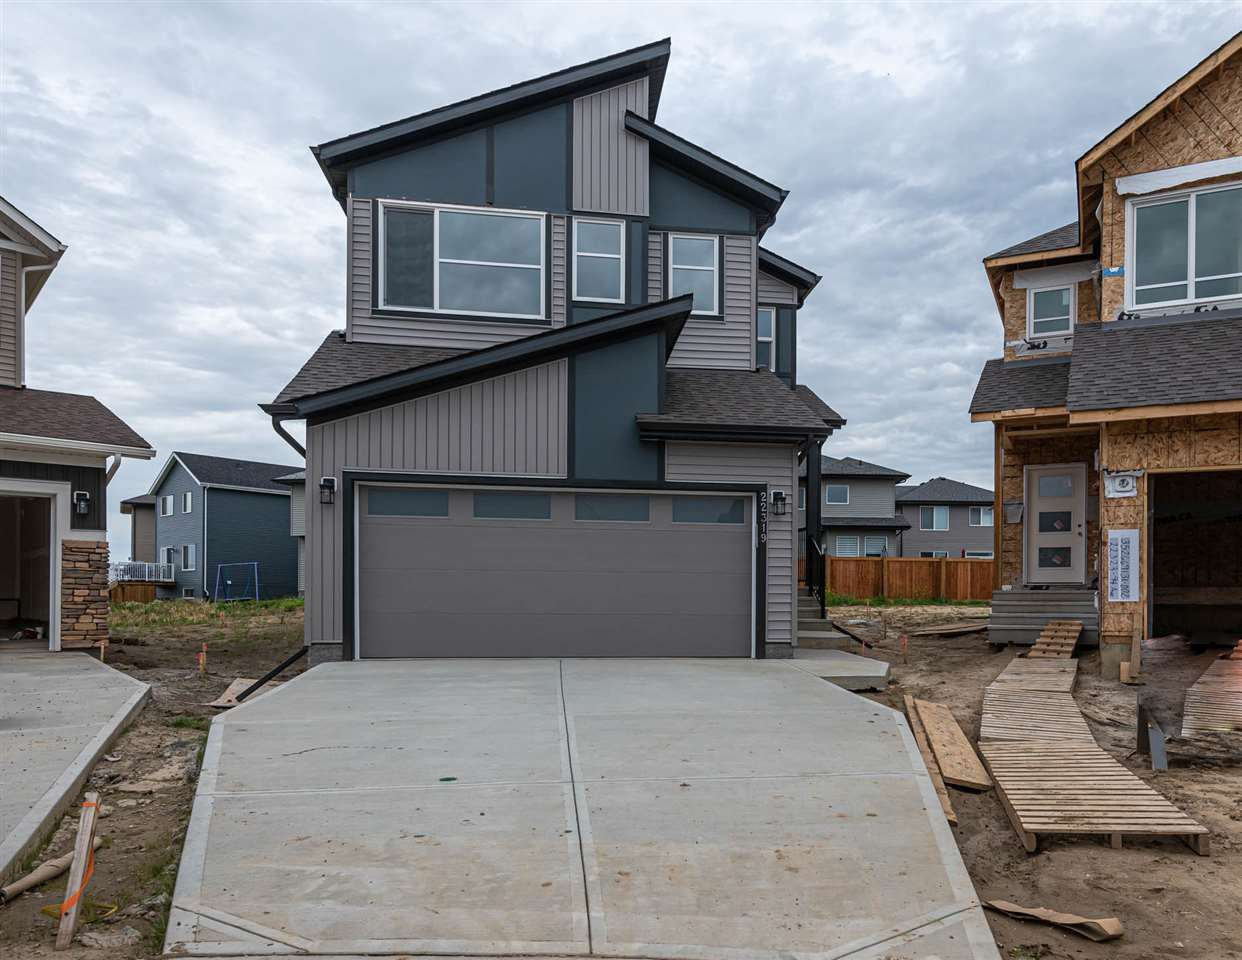 Main Photo: 22319 94 Avenue NW in Edmonton: Zone 58 House for sale : MLS®# E4211644